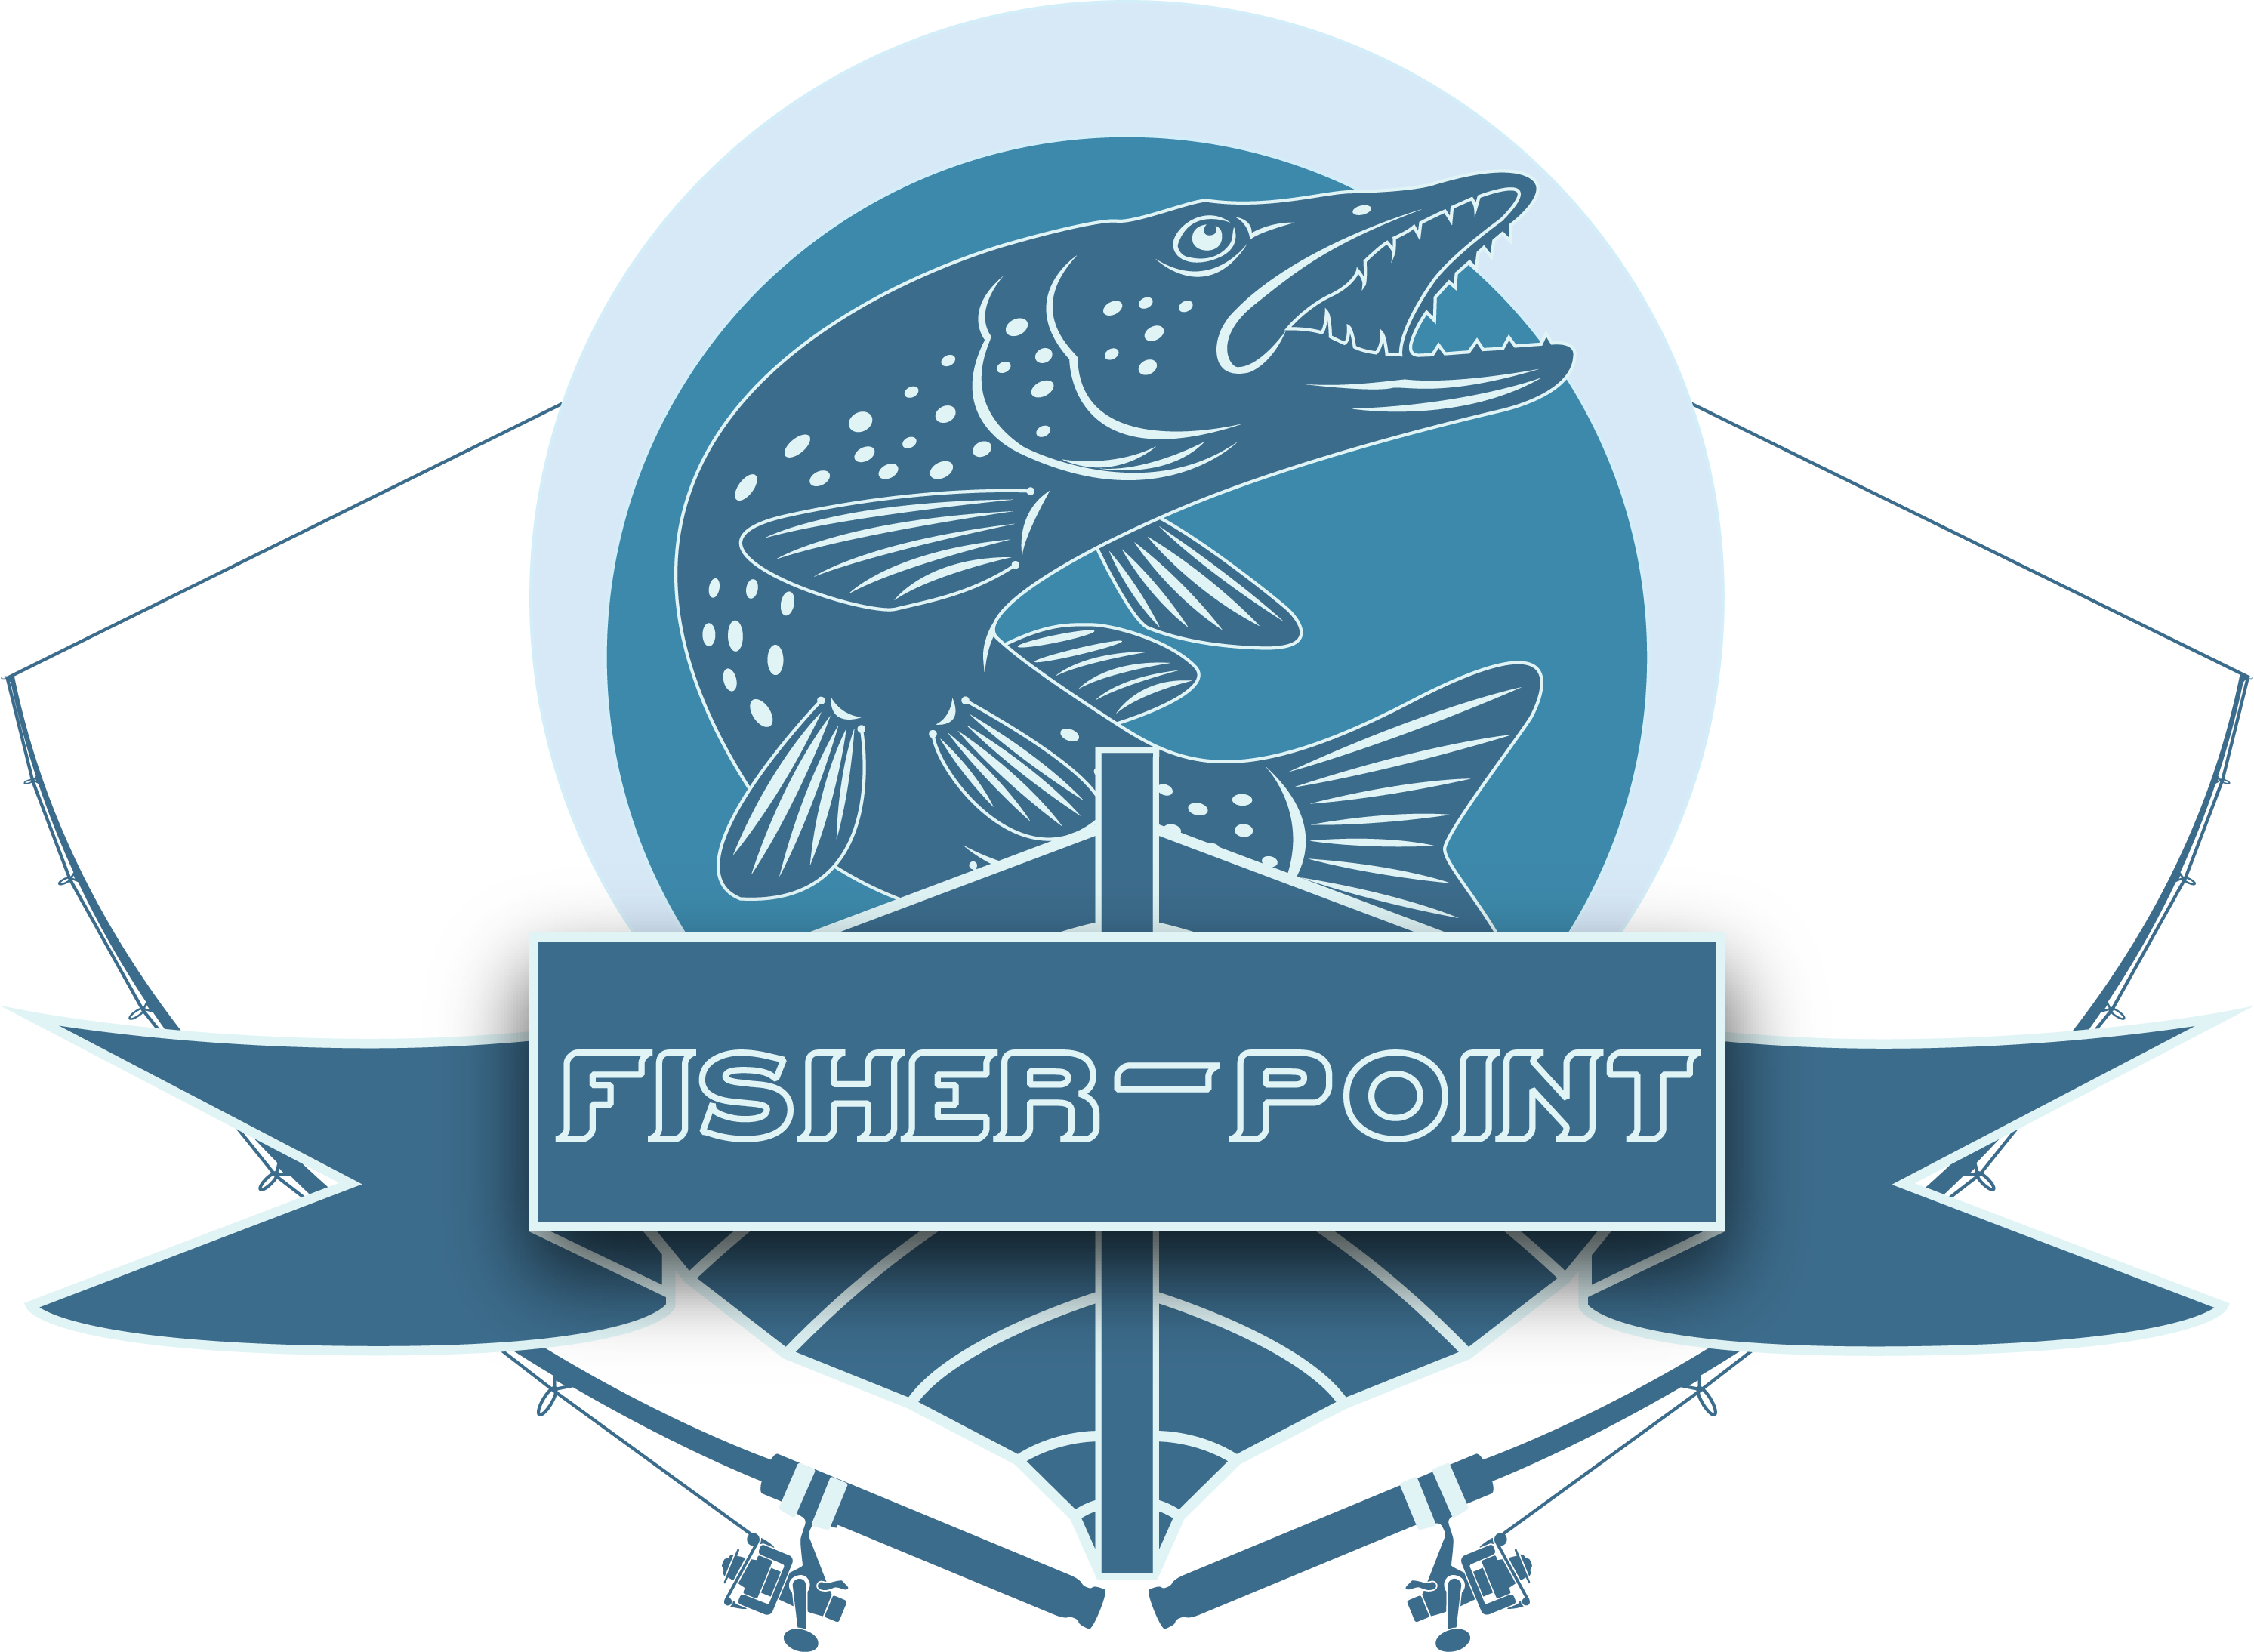 fisher-point